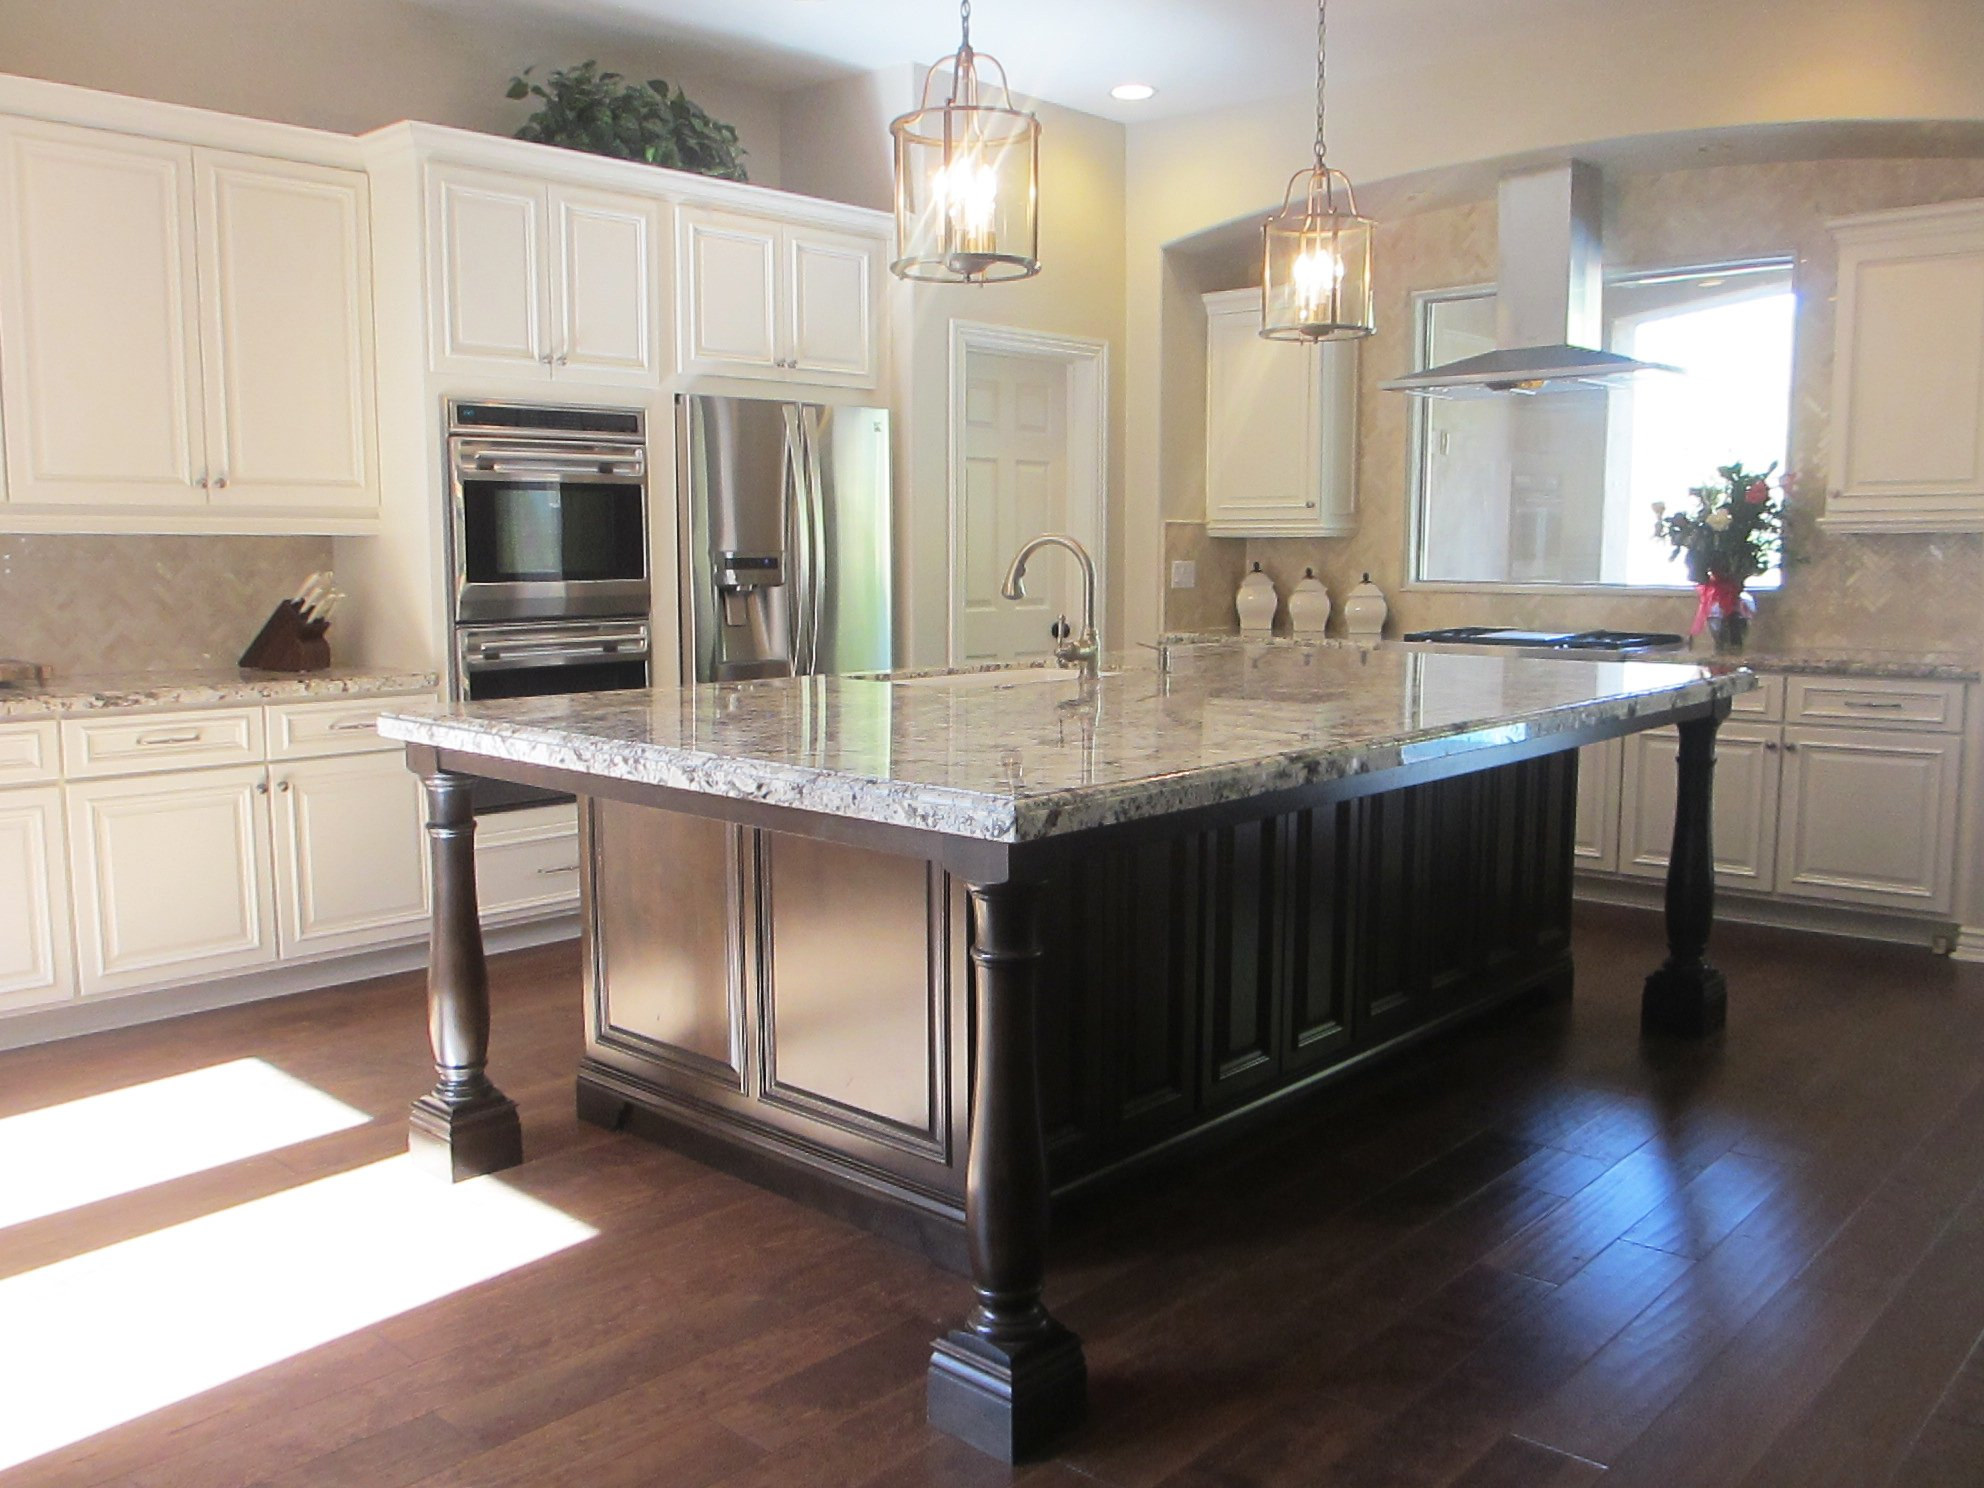 Kitchen Cabinet Refacing Blog | Cabinet Ideas & Resources